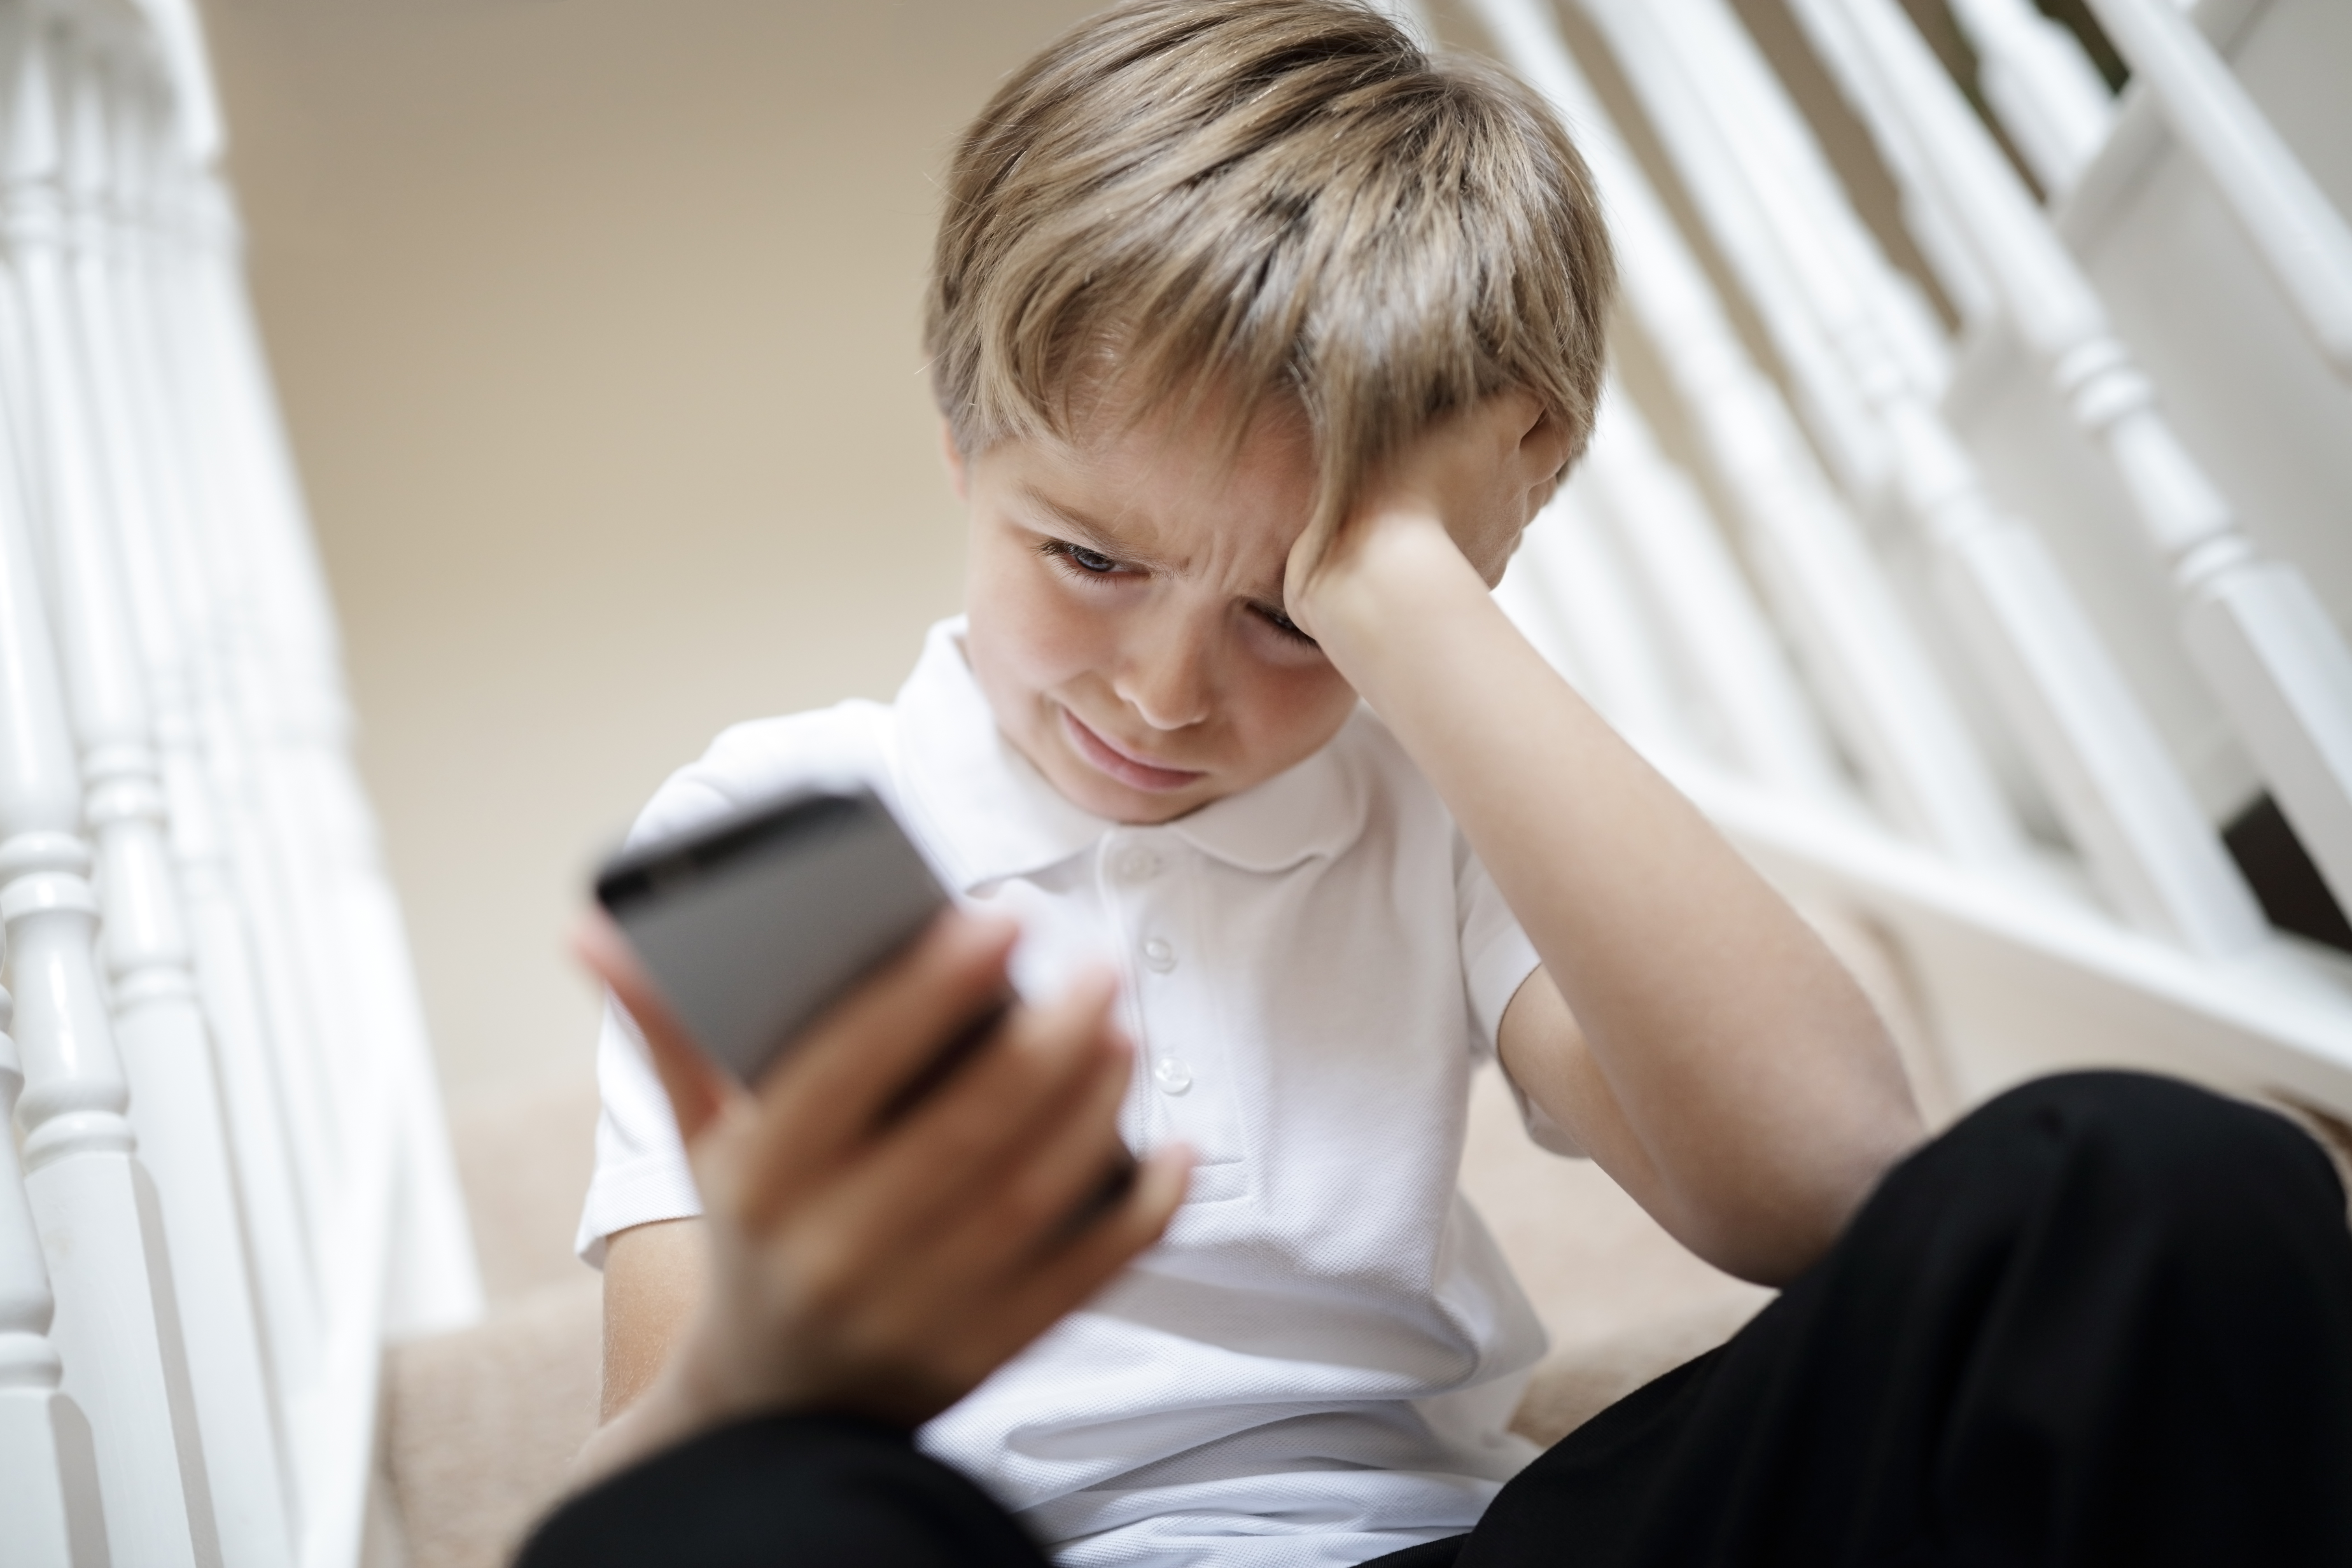 Young boy looking at his phone, very upset by what he sees